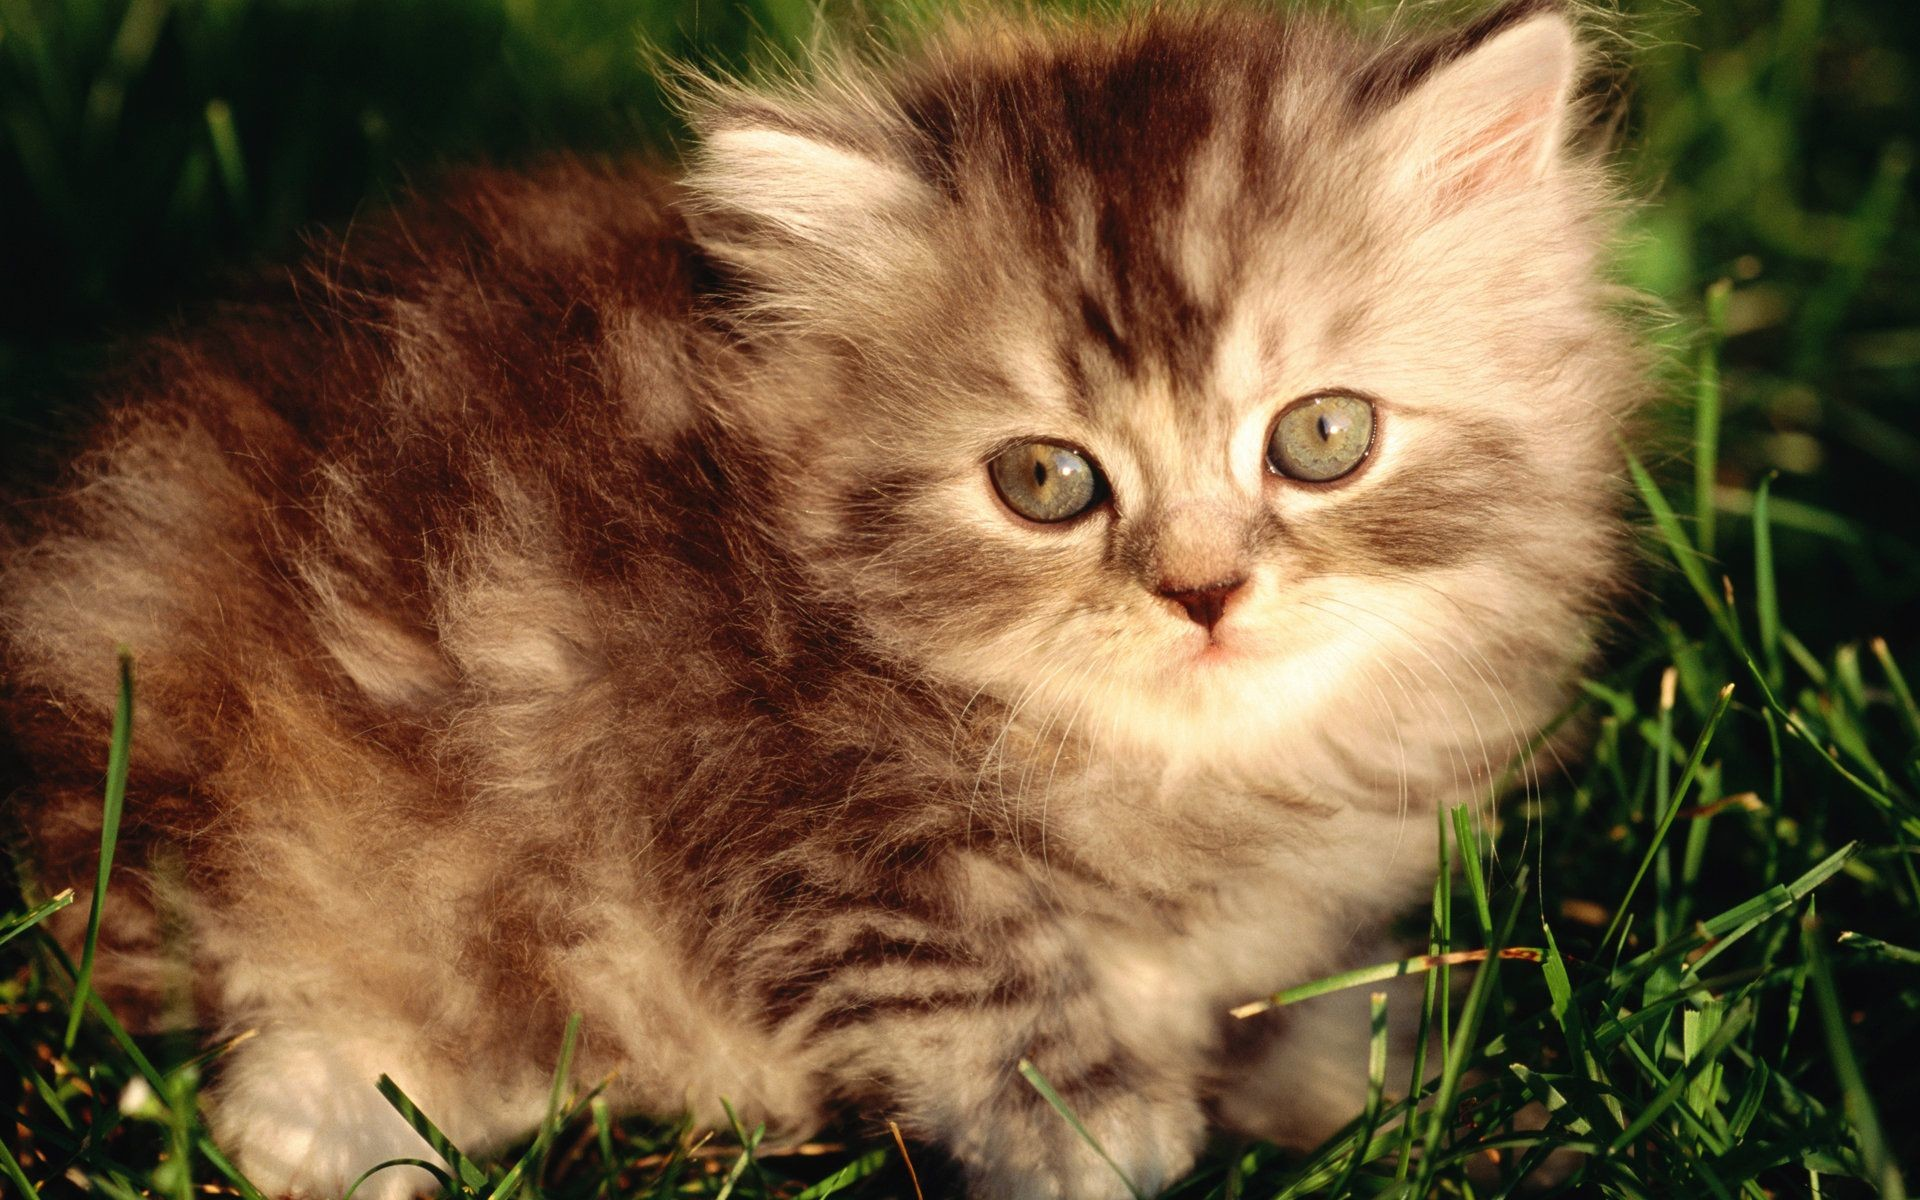 Res: 1920x1200, HD Sweet Kitty : Adorable Fluffy Baby Kittens Widescreen Wallpapers  1920*1200 Wallpaper 20